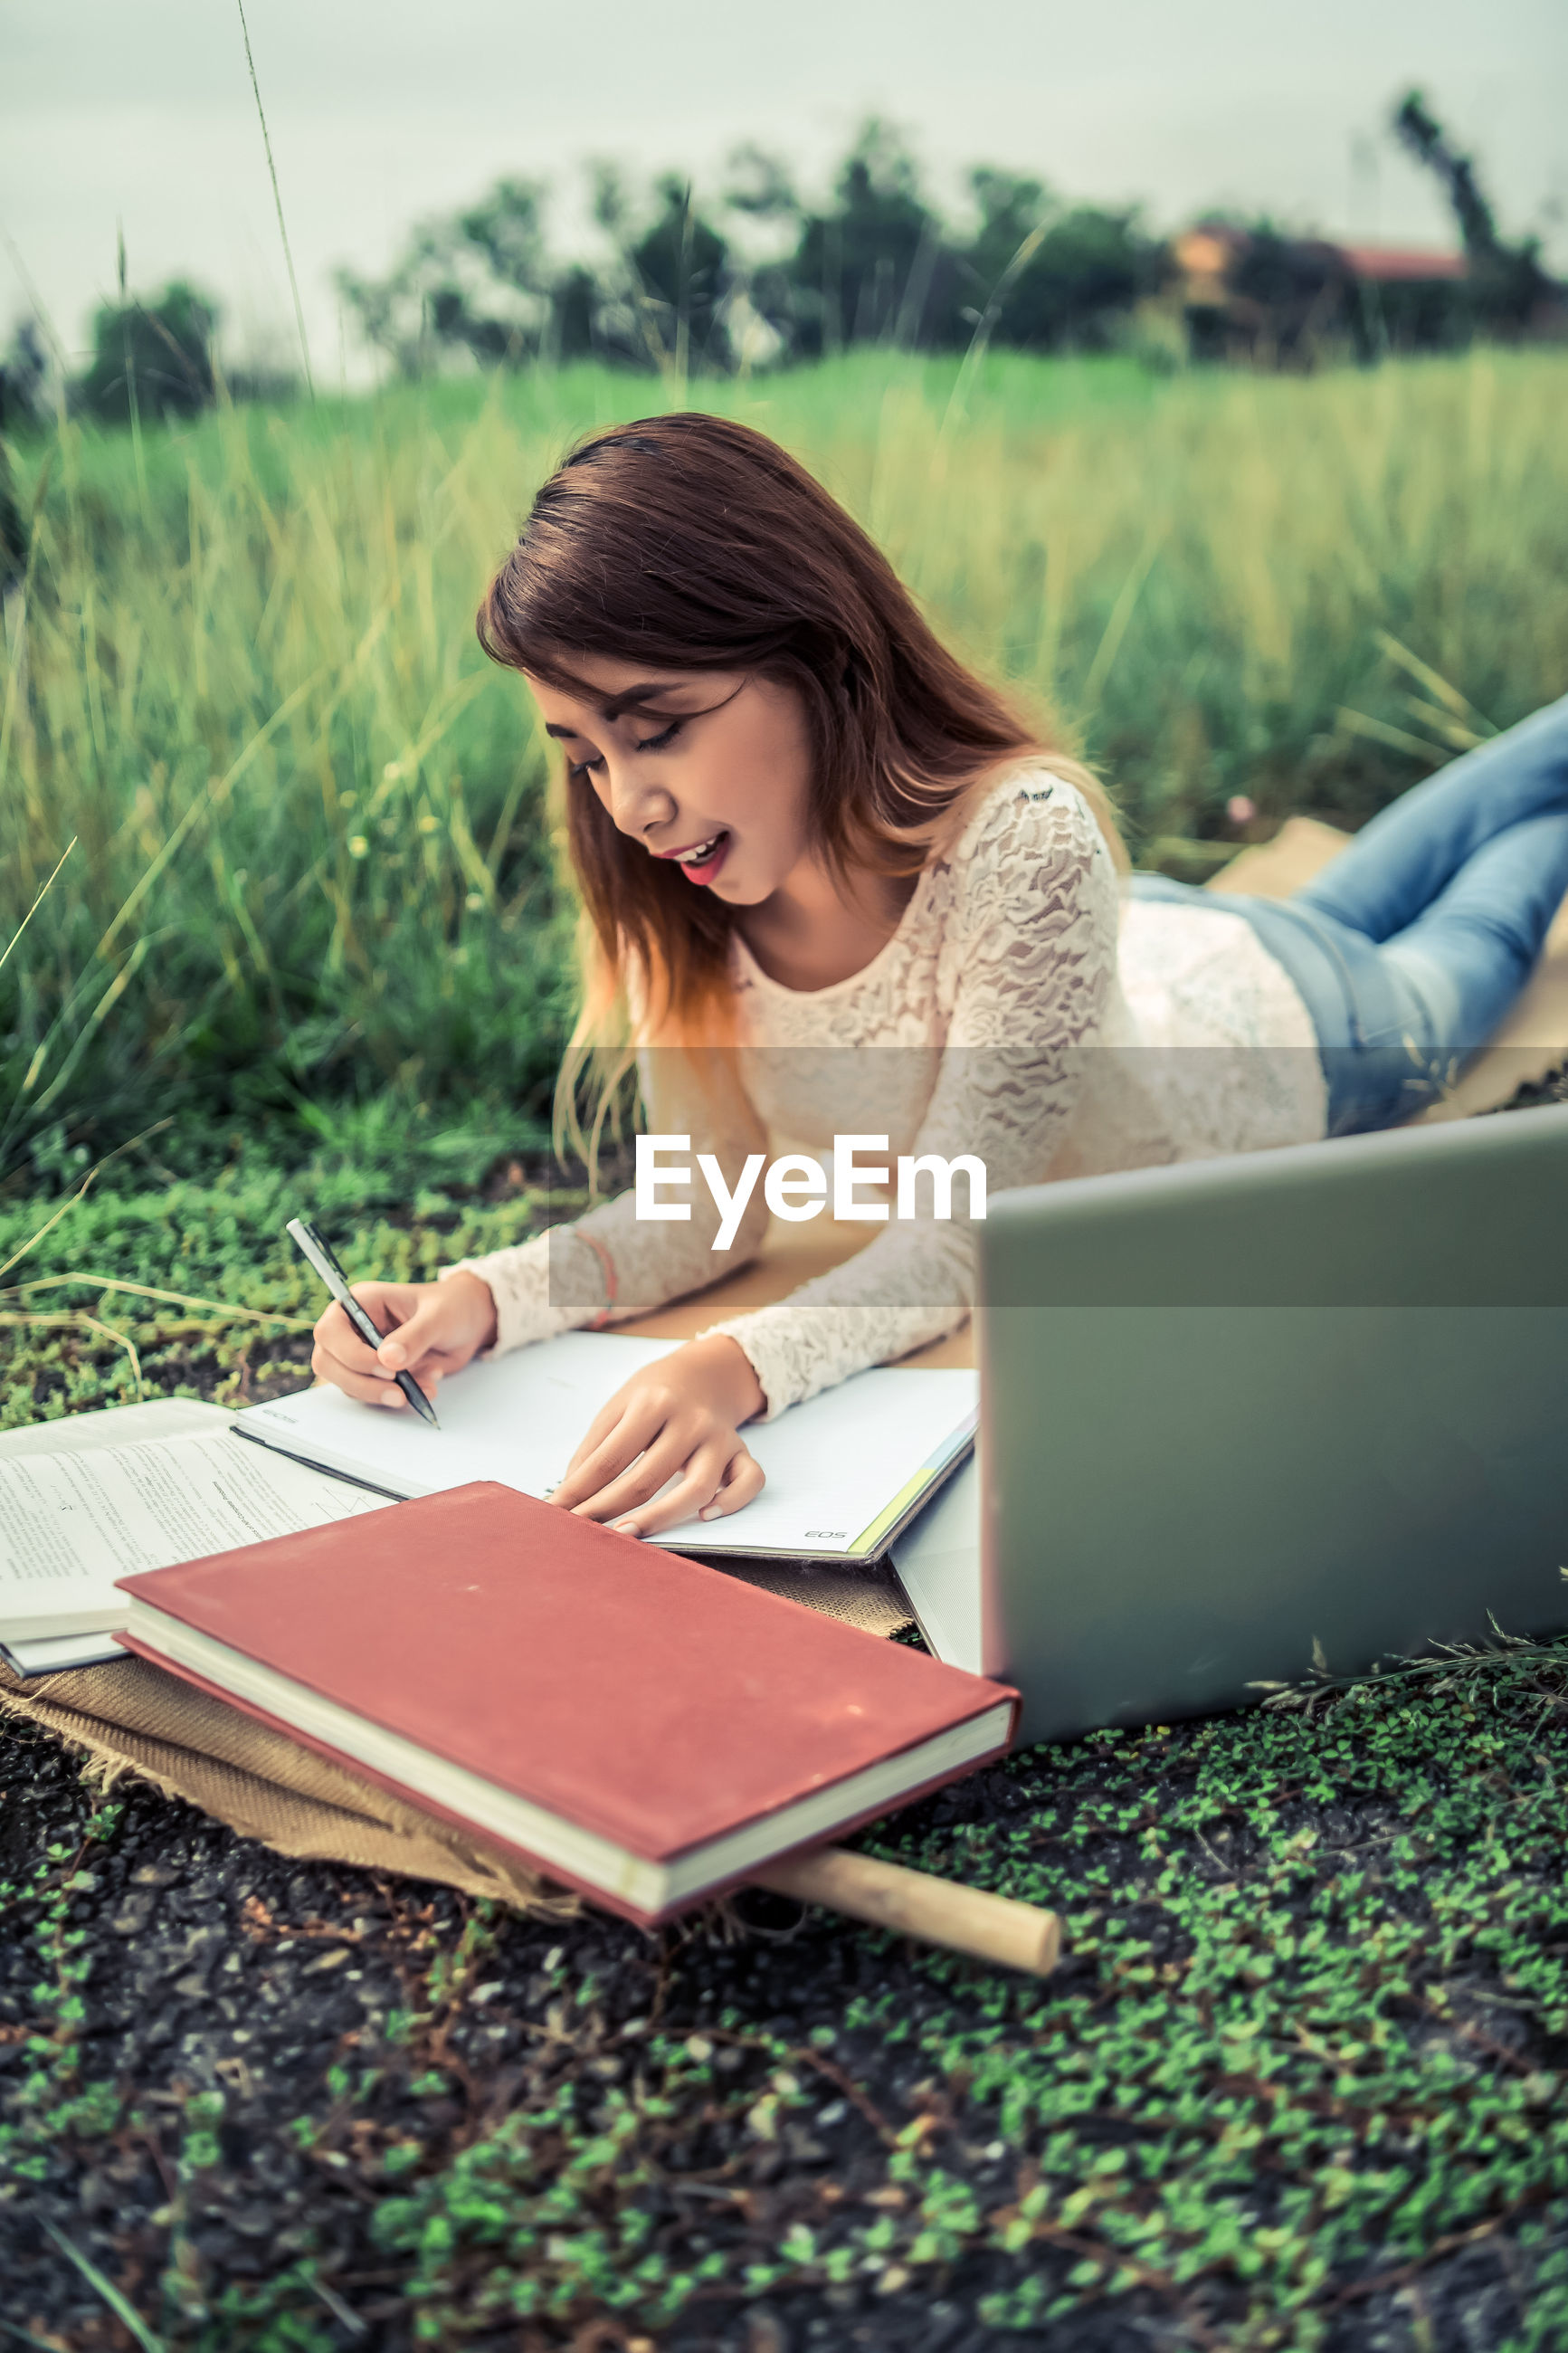 Young woman writing in book by laptop on field